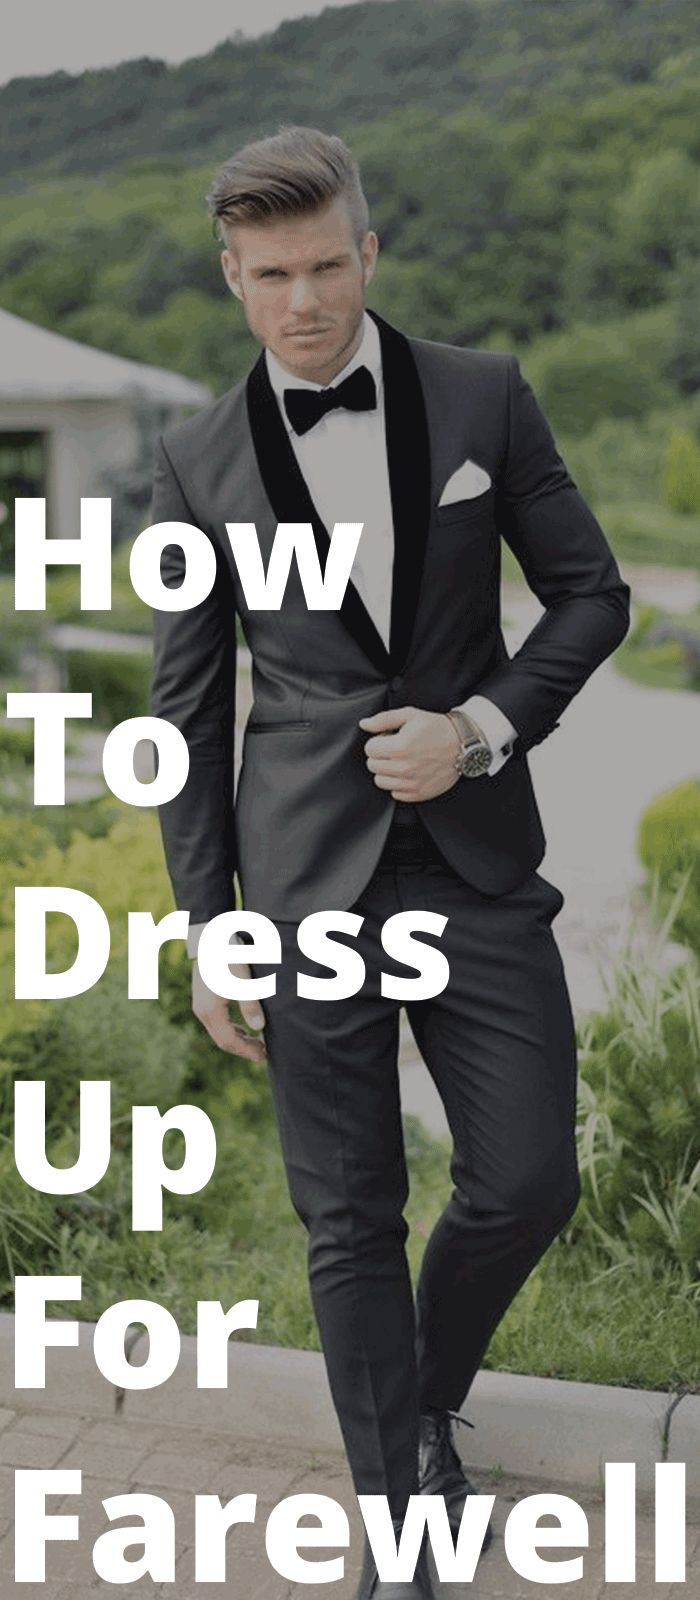 Farewell-How to dress up for School Farewell/College Farewell